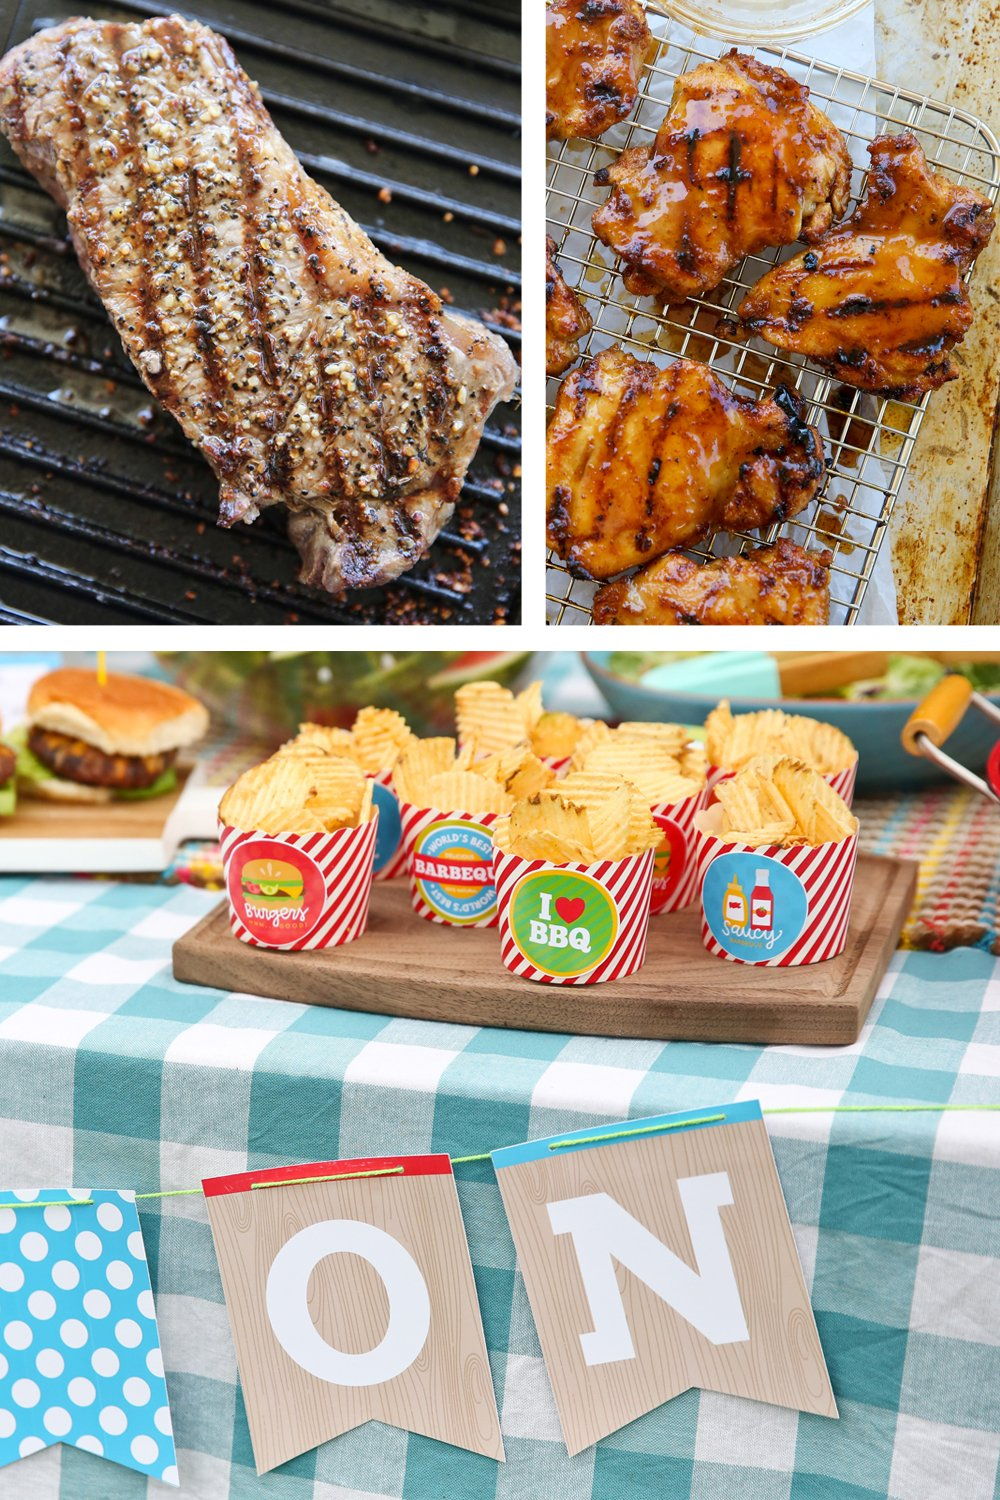 grill and bbq